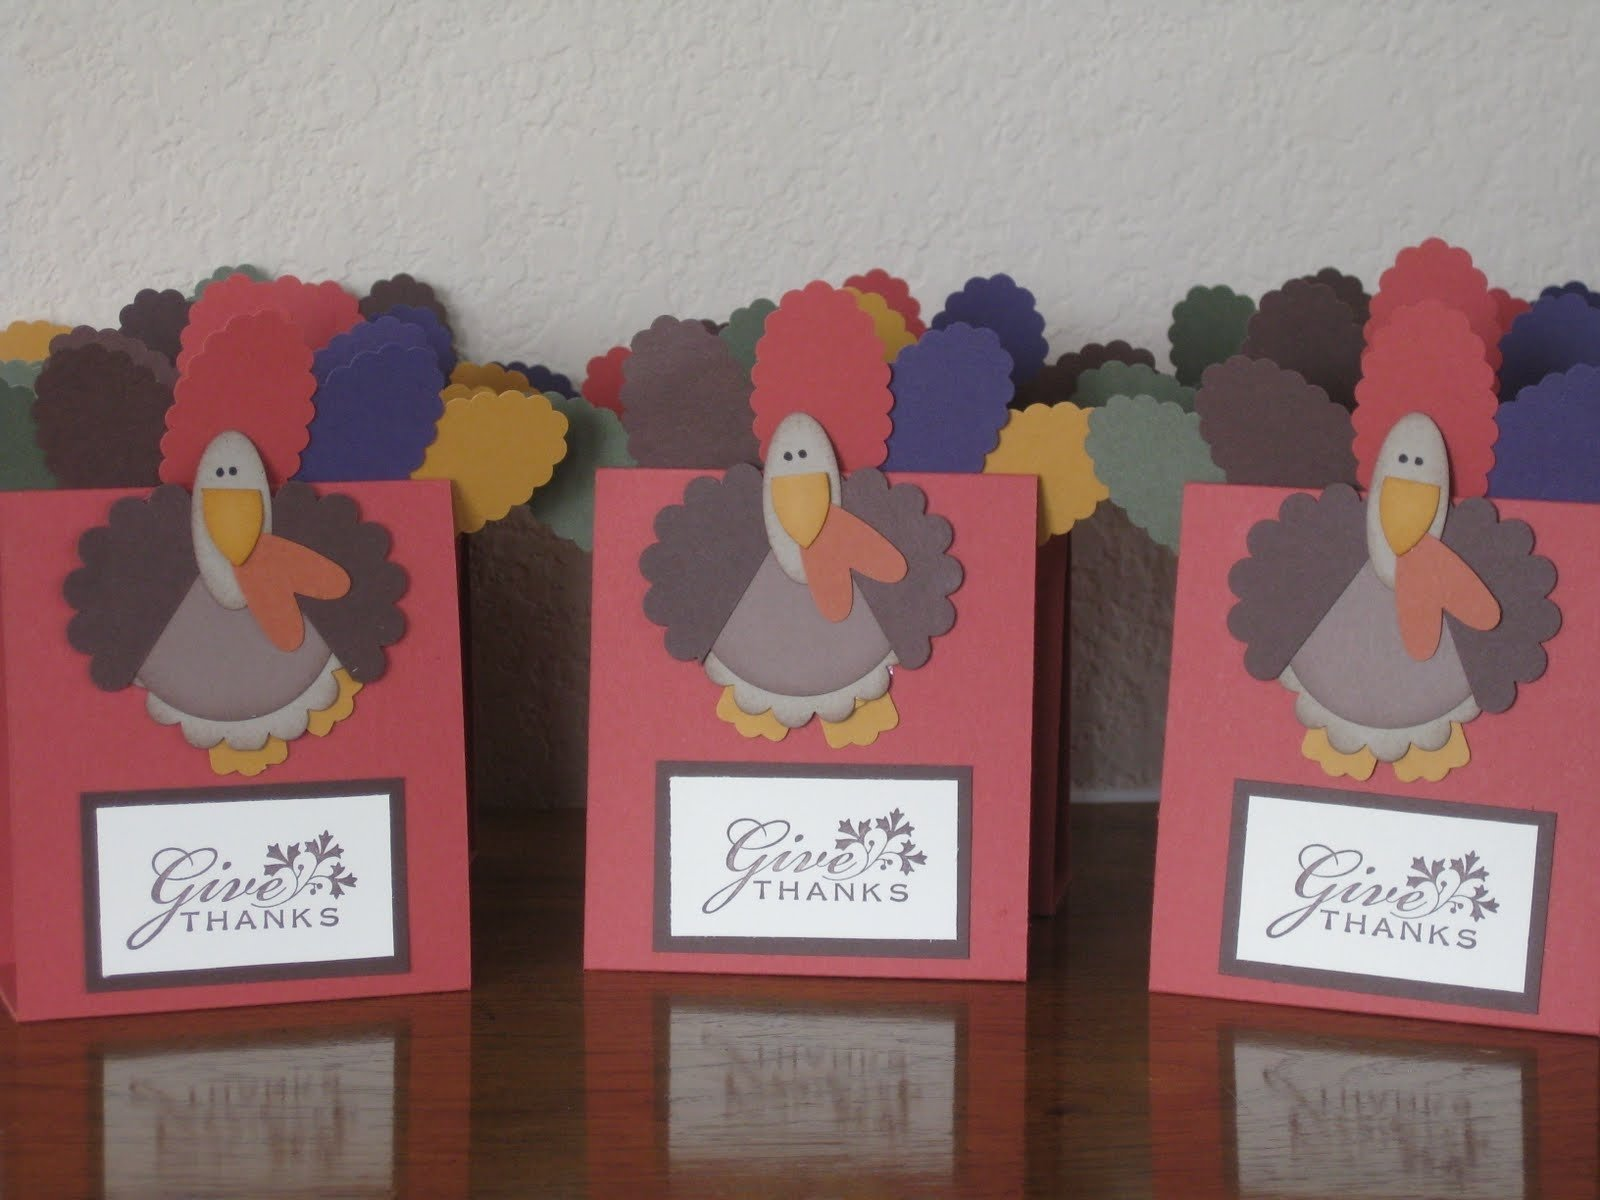 10 Gorgeous Thanksgiving Gift Ideas For Teachers narrowroad stamping thanksgiving teacher gift and class gifts 2020